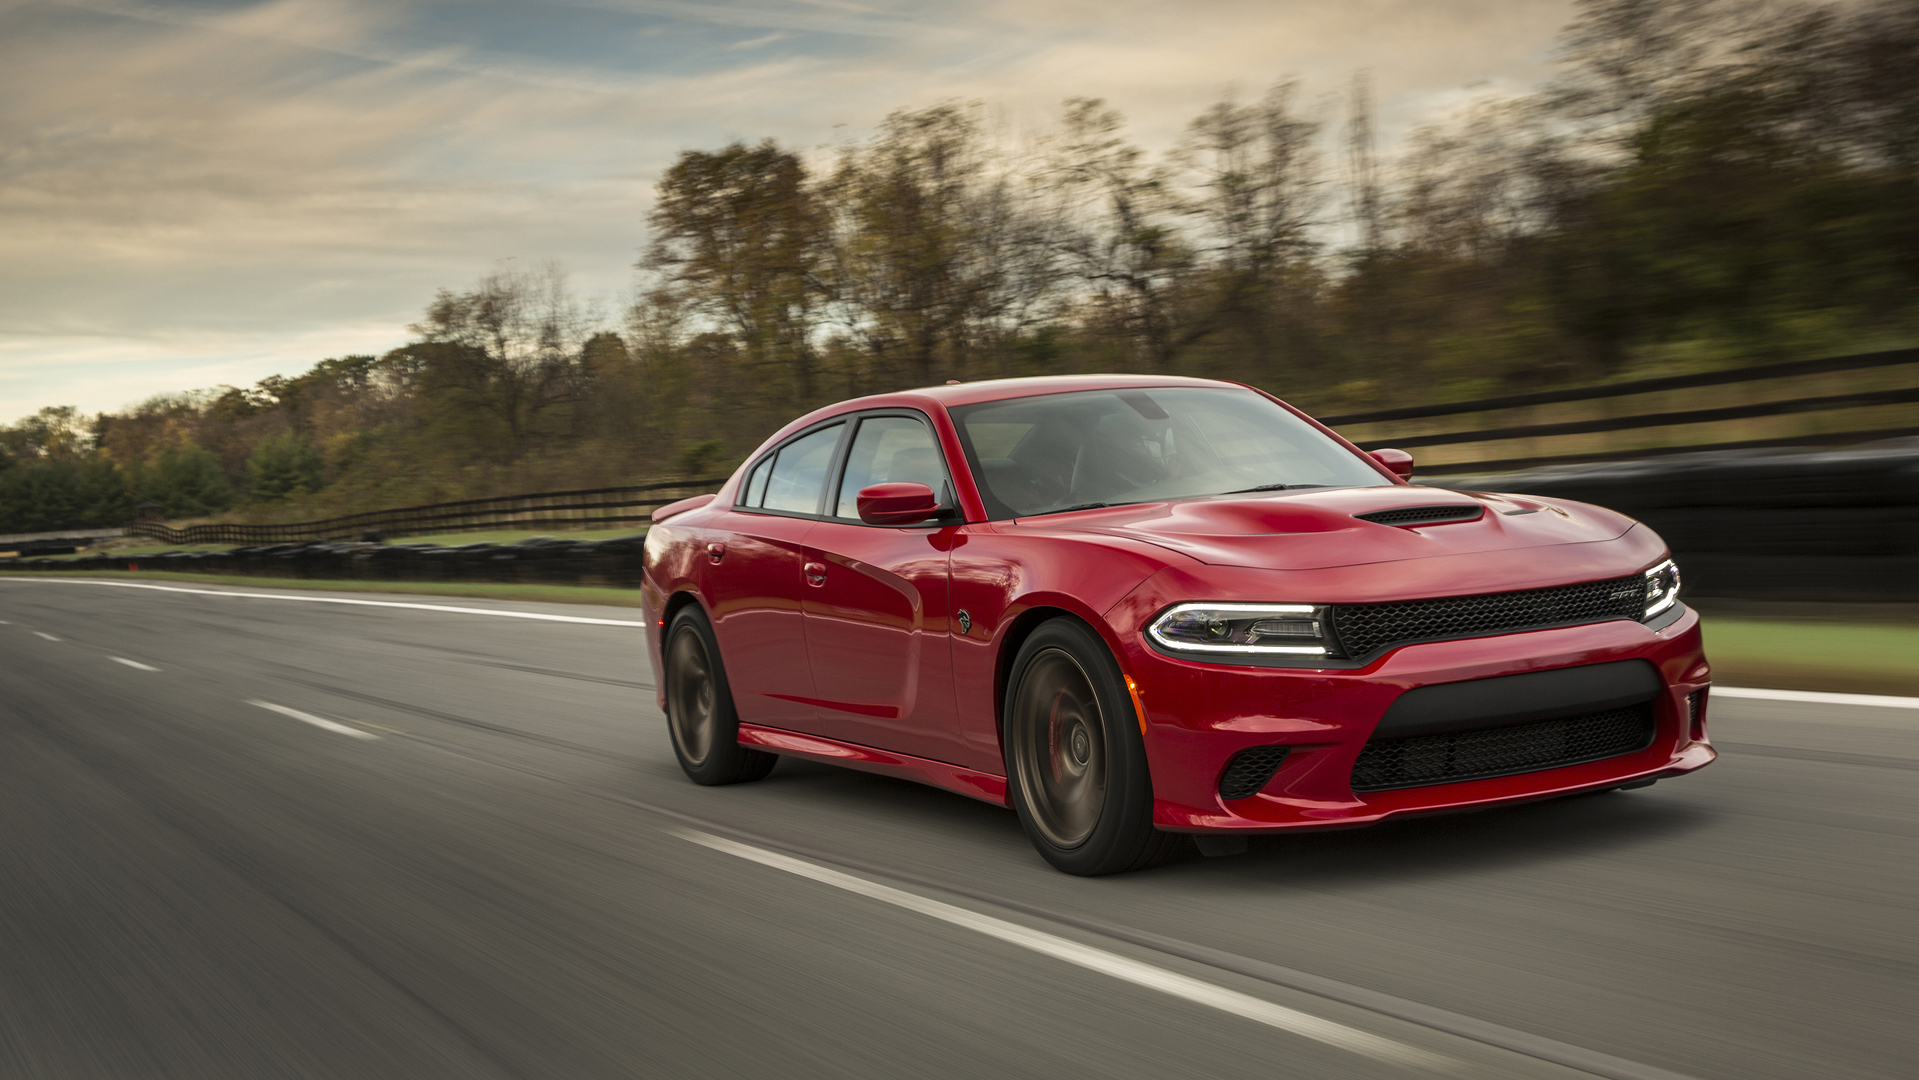 Hellcat Charger For Sale In Michigan >> Dodge Charger SRT Hellcat News and Reviews | Motor1.com